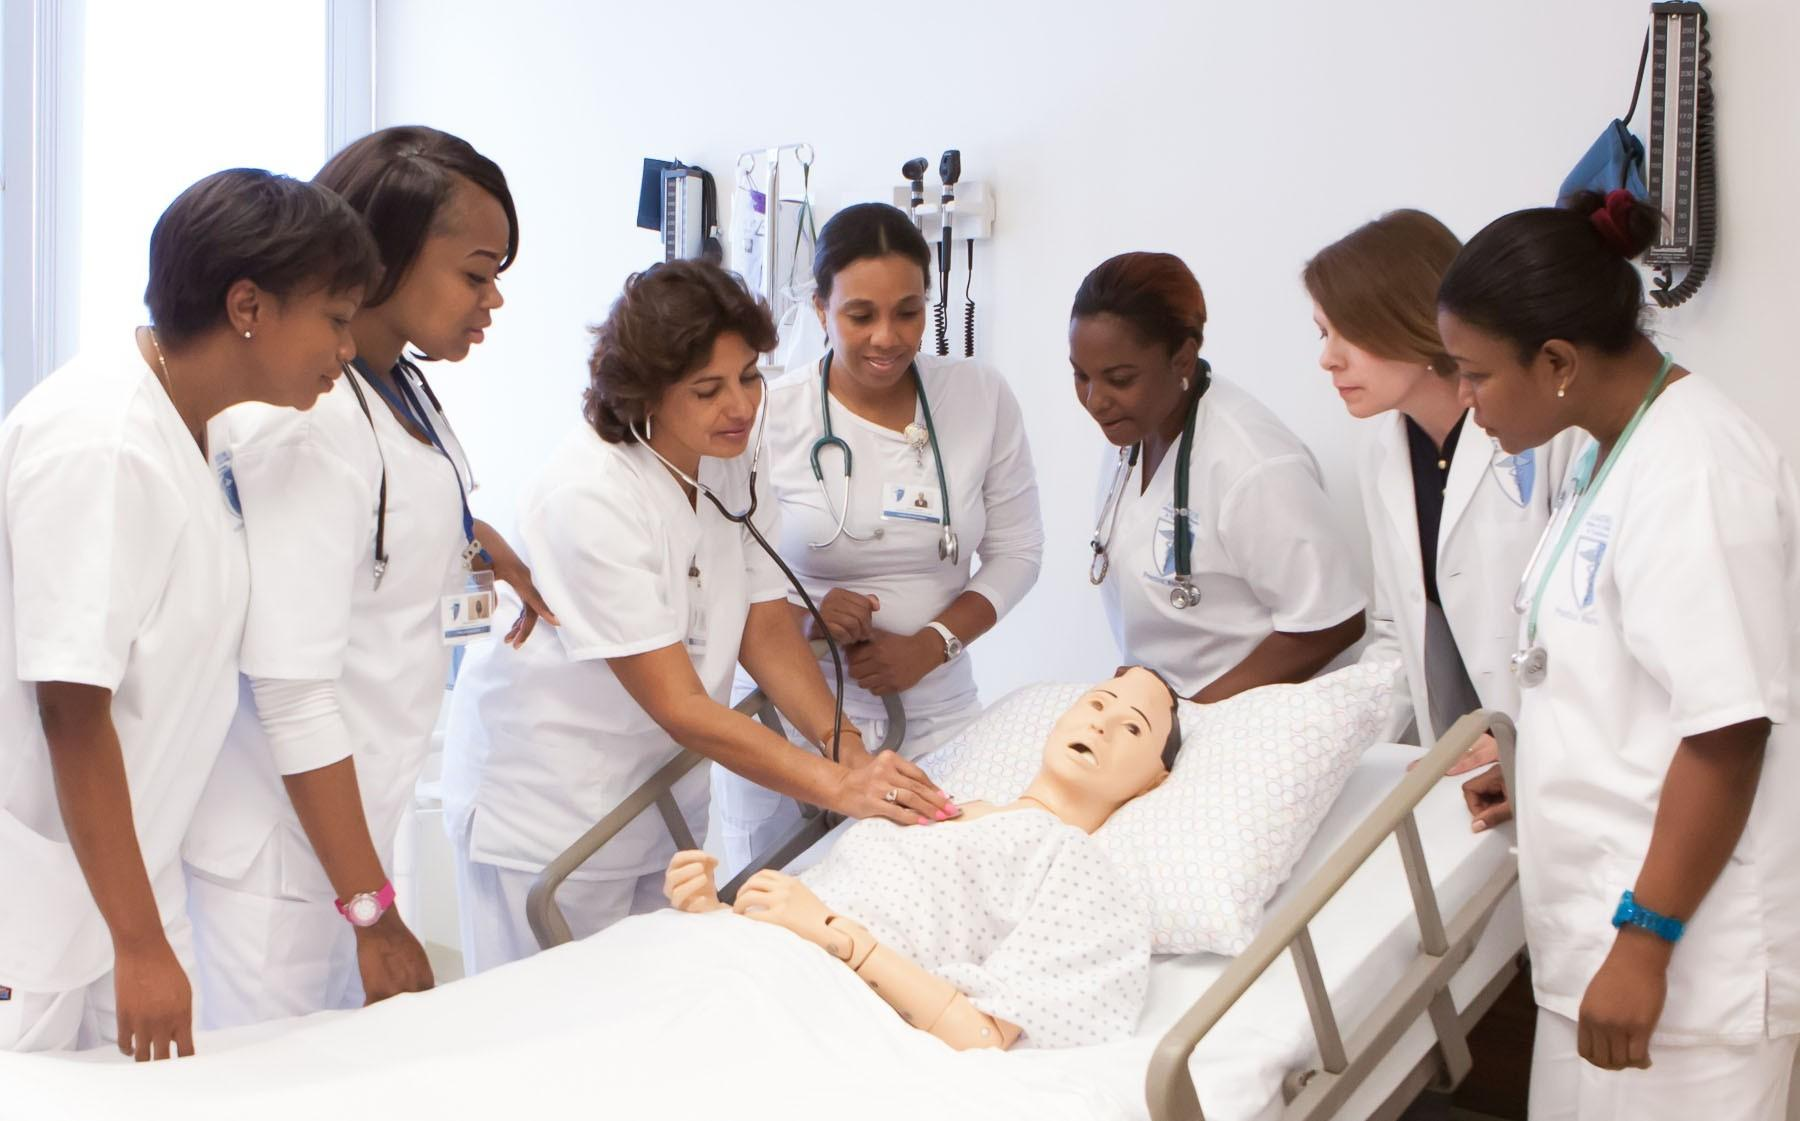 Medical Assistant Certification Training School In Orlando